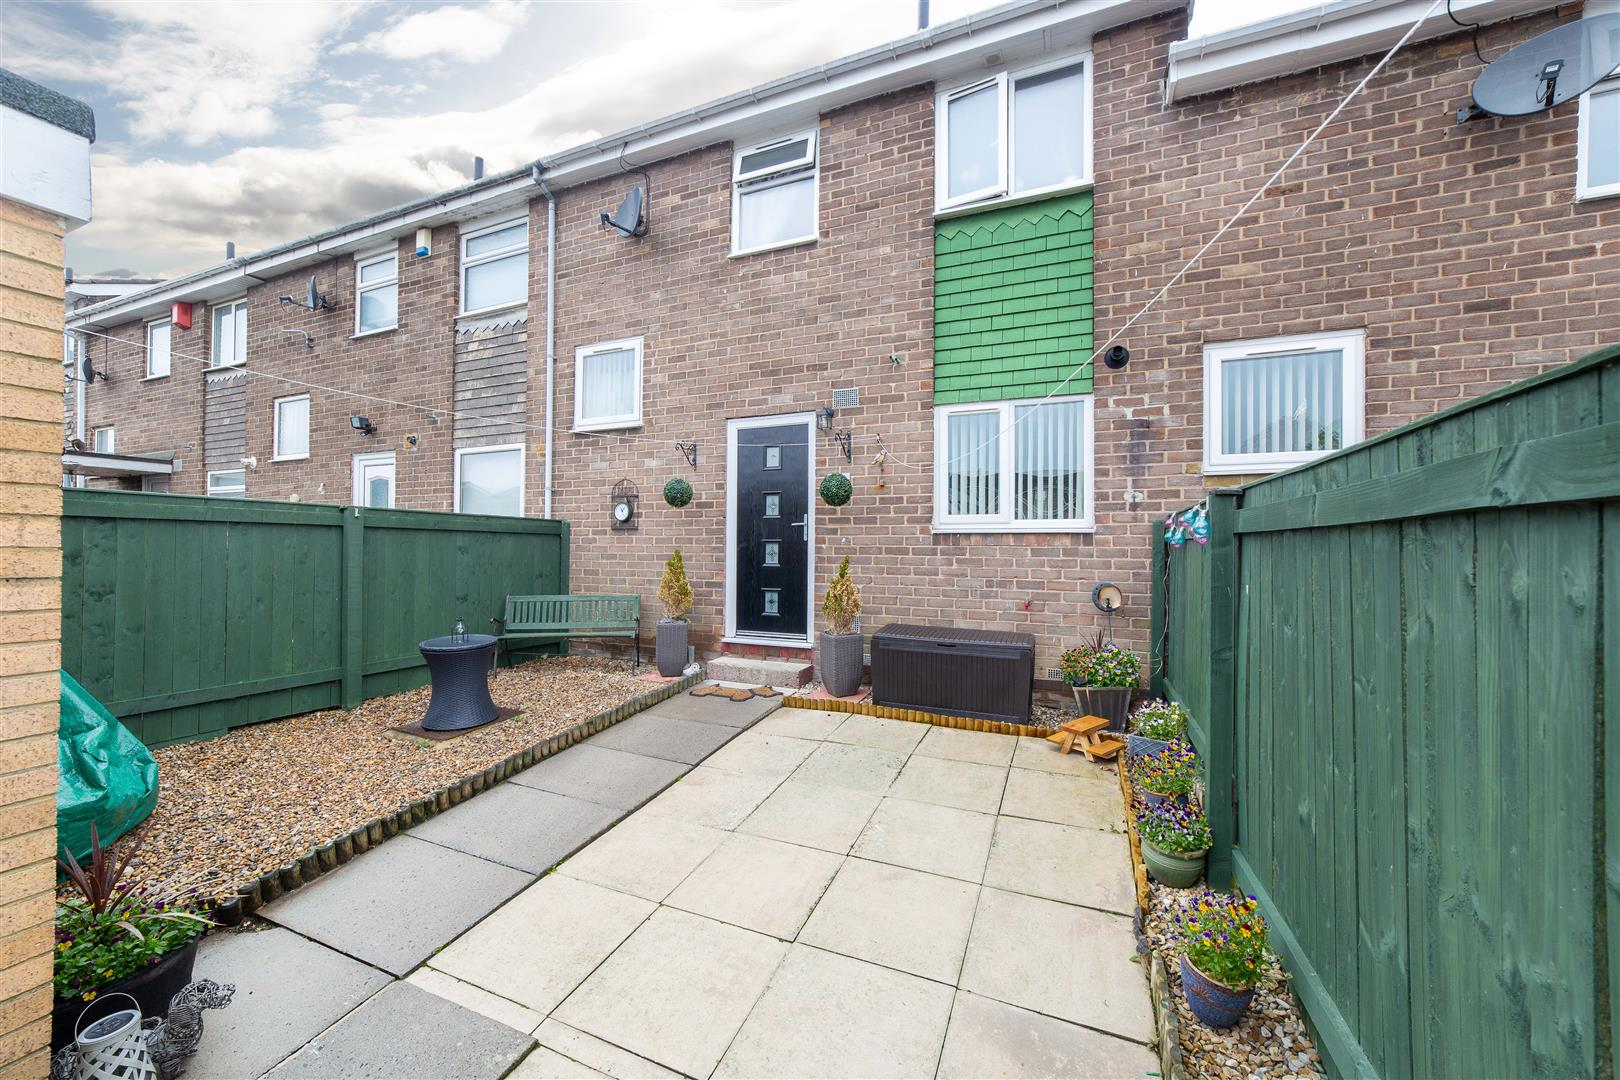 2 bed terraced house for sale in Cramlington, NE23 6JR, NE23